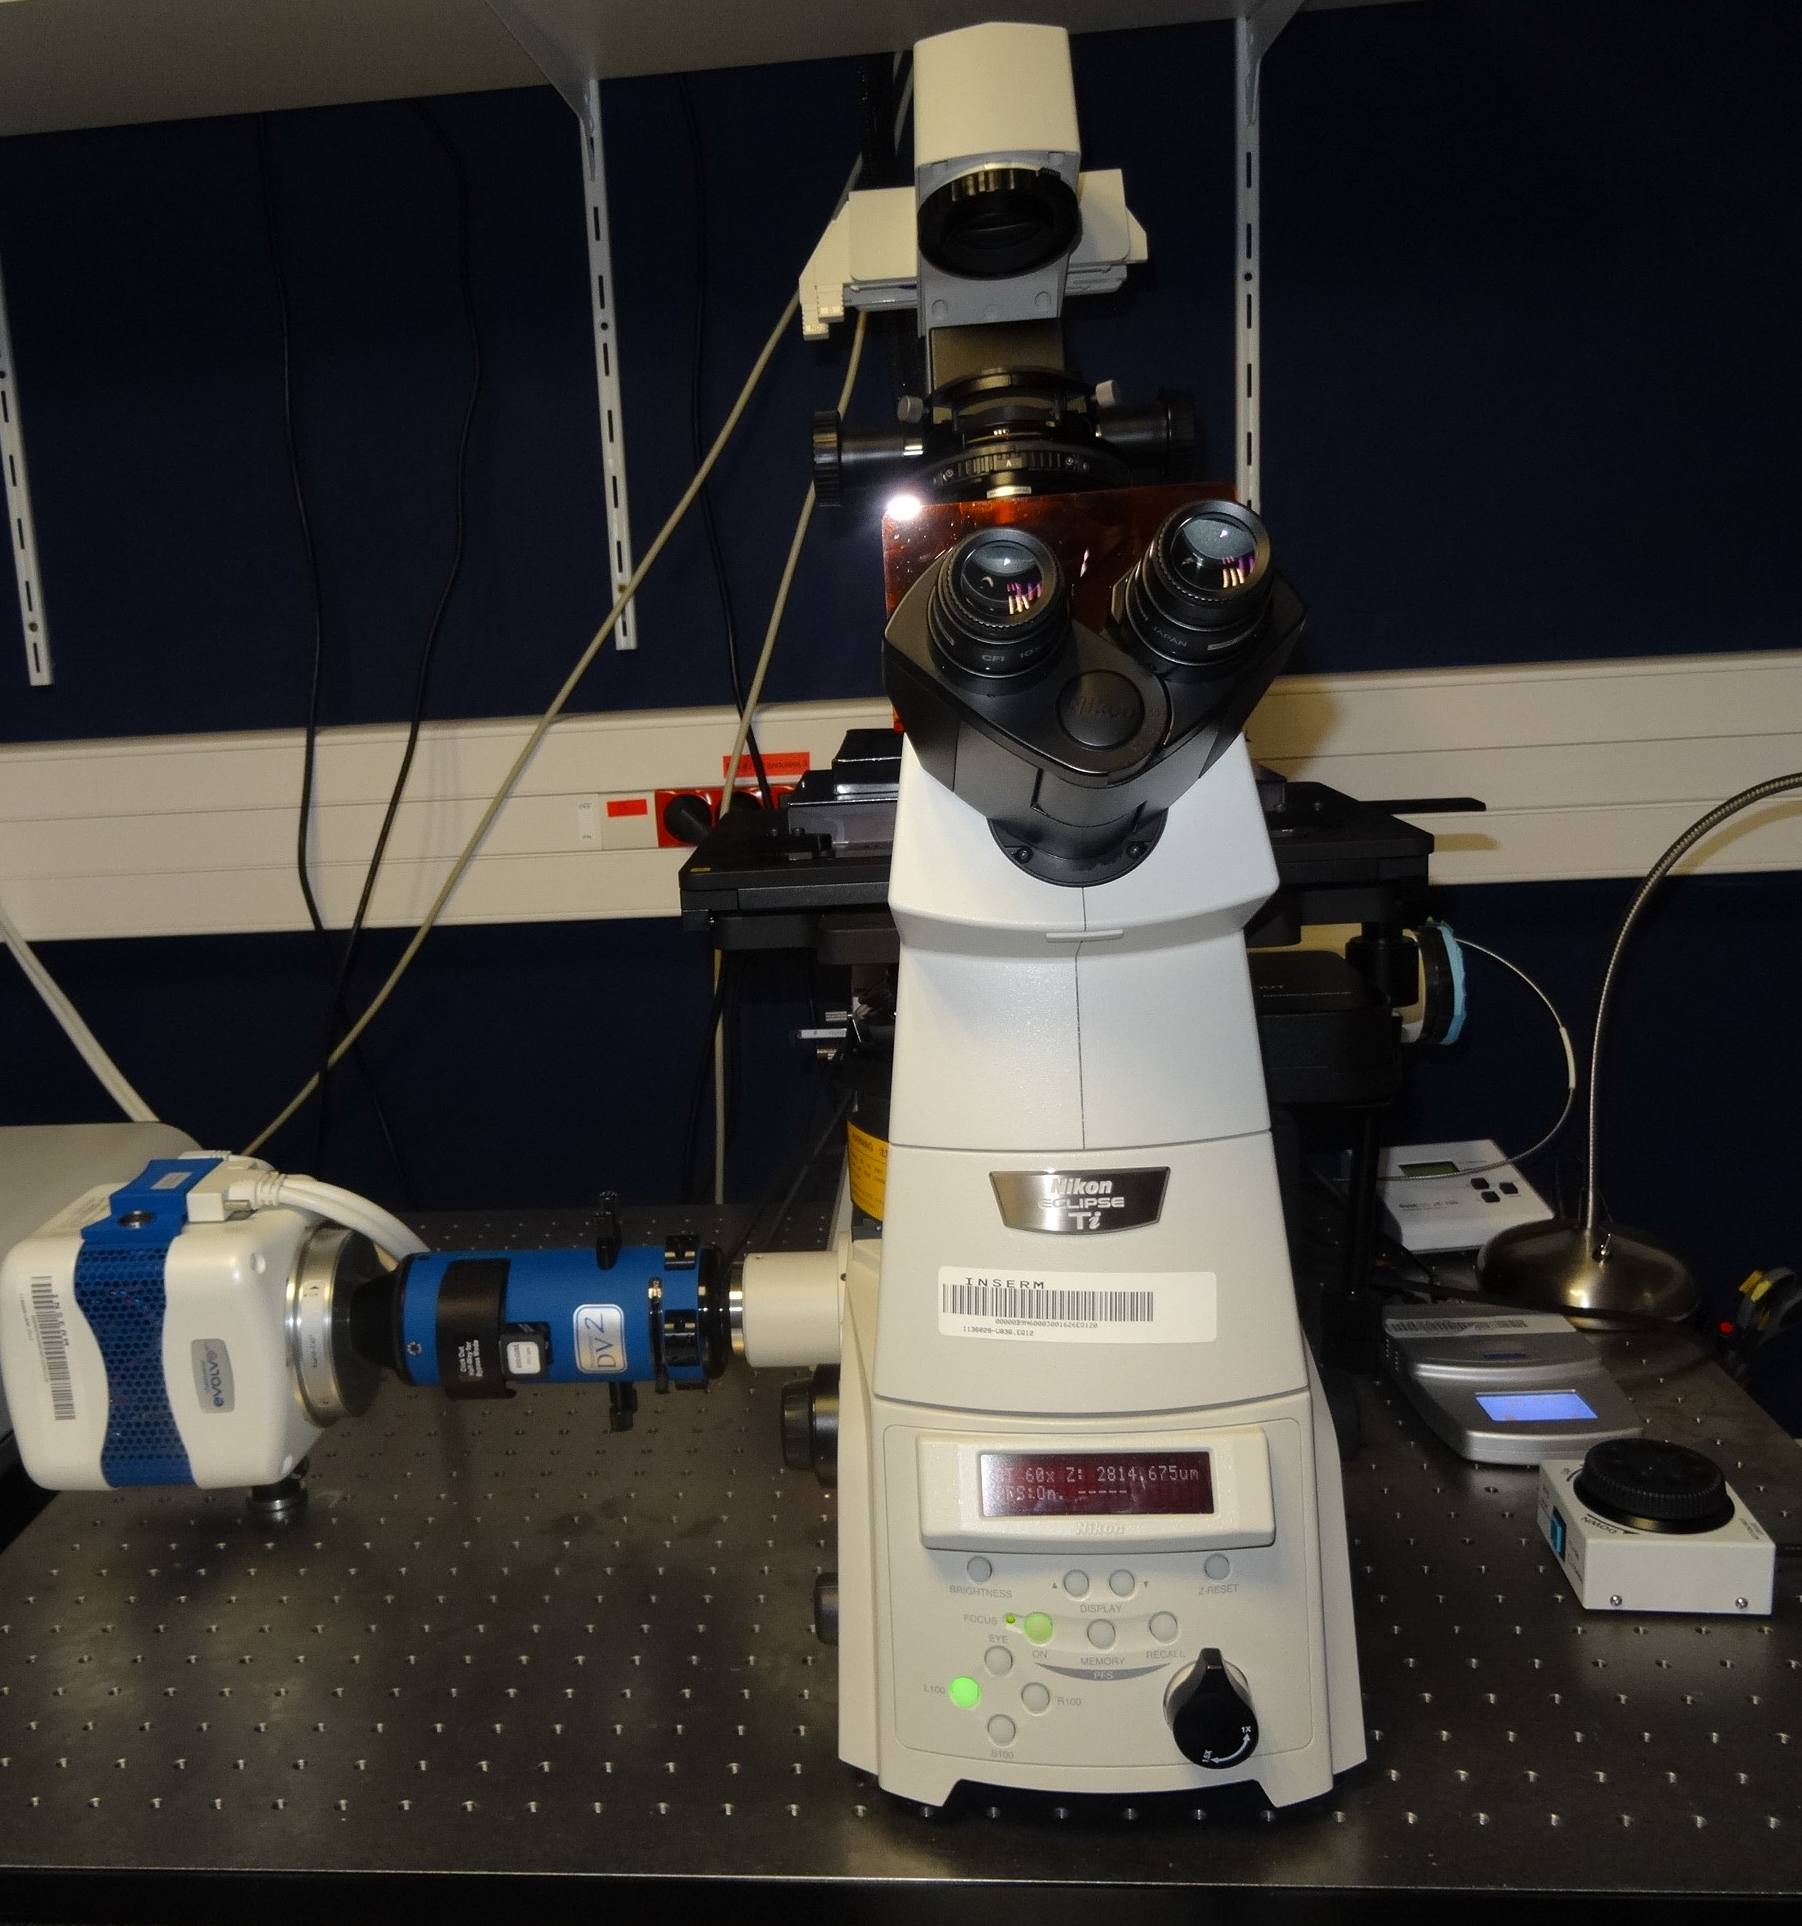 The TIRF microscopy system set up, with the Linkam MC60 controller on the right.